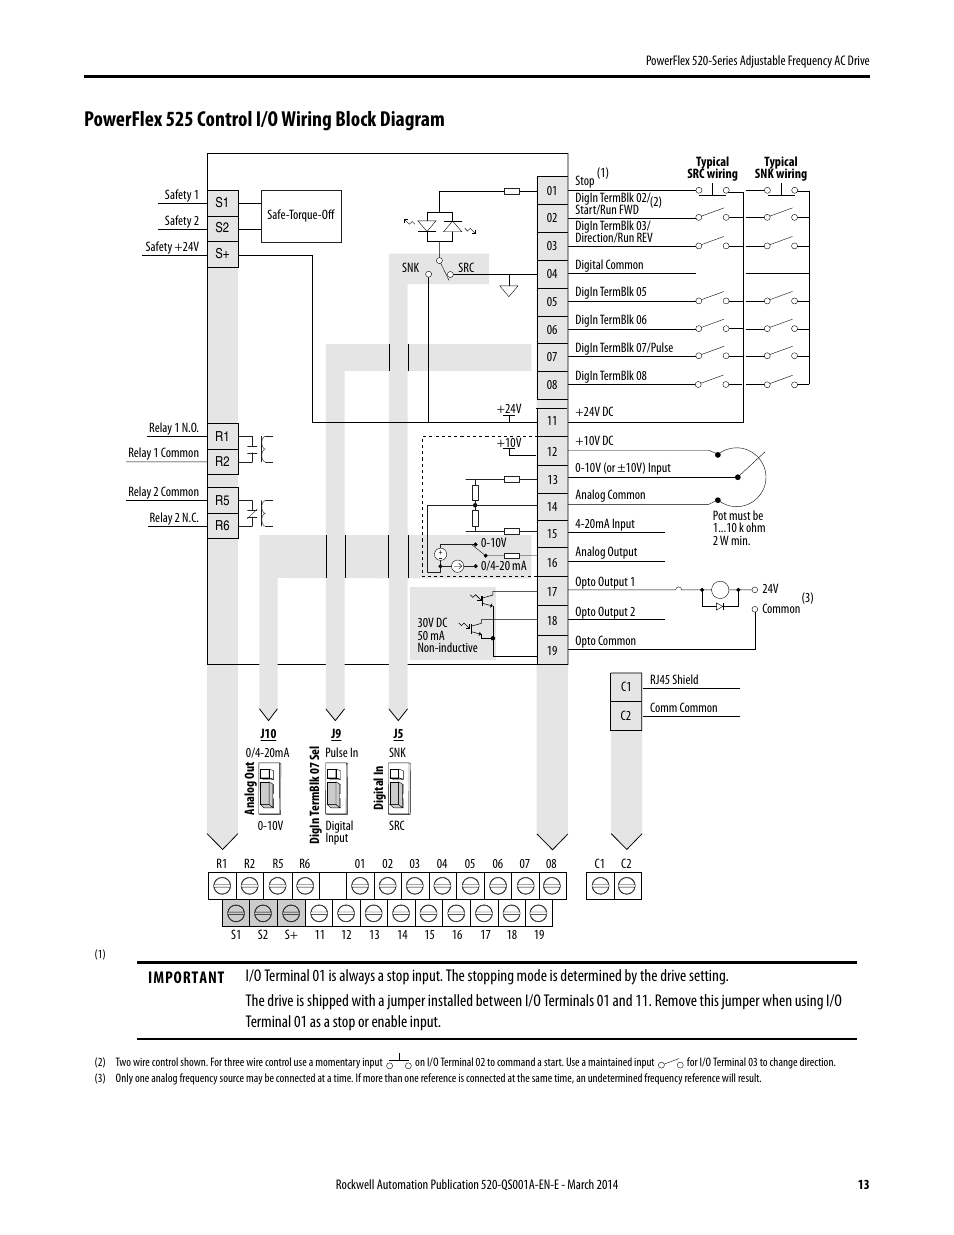 wiring diagram powerflex wiring discover your wiring diagram wiring diagram powerflex 525 wiring wiring diagrams for car